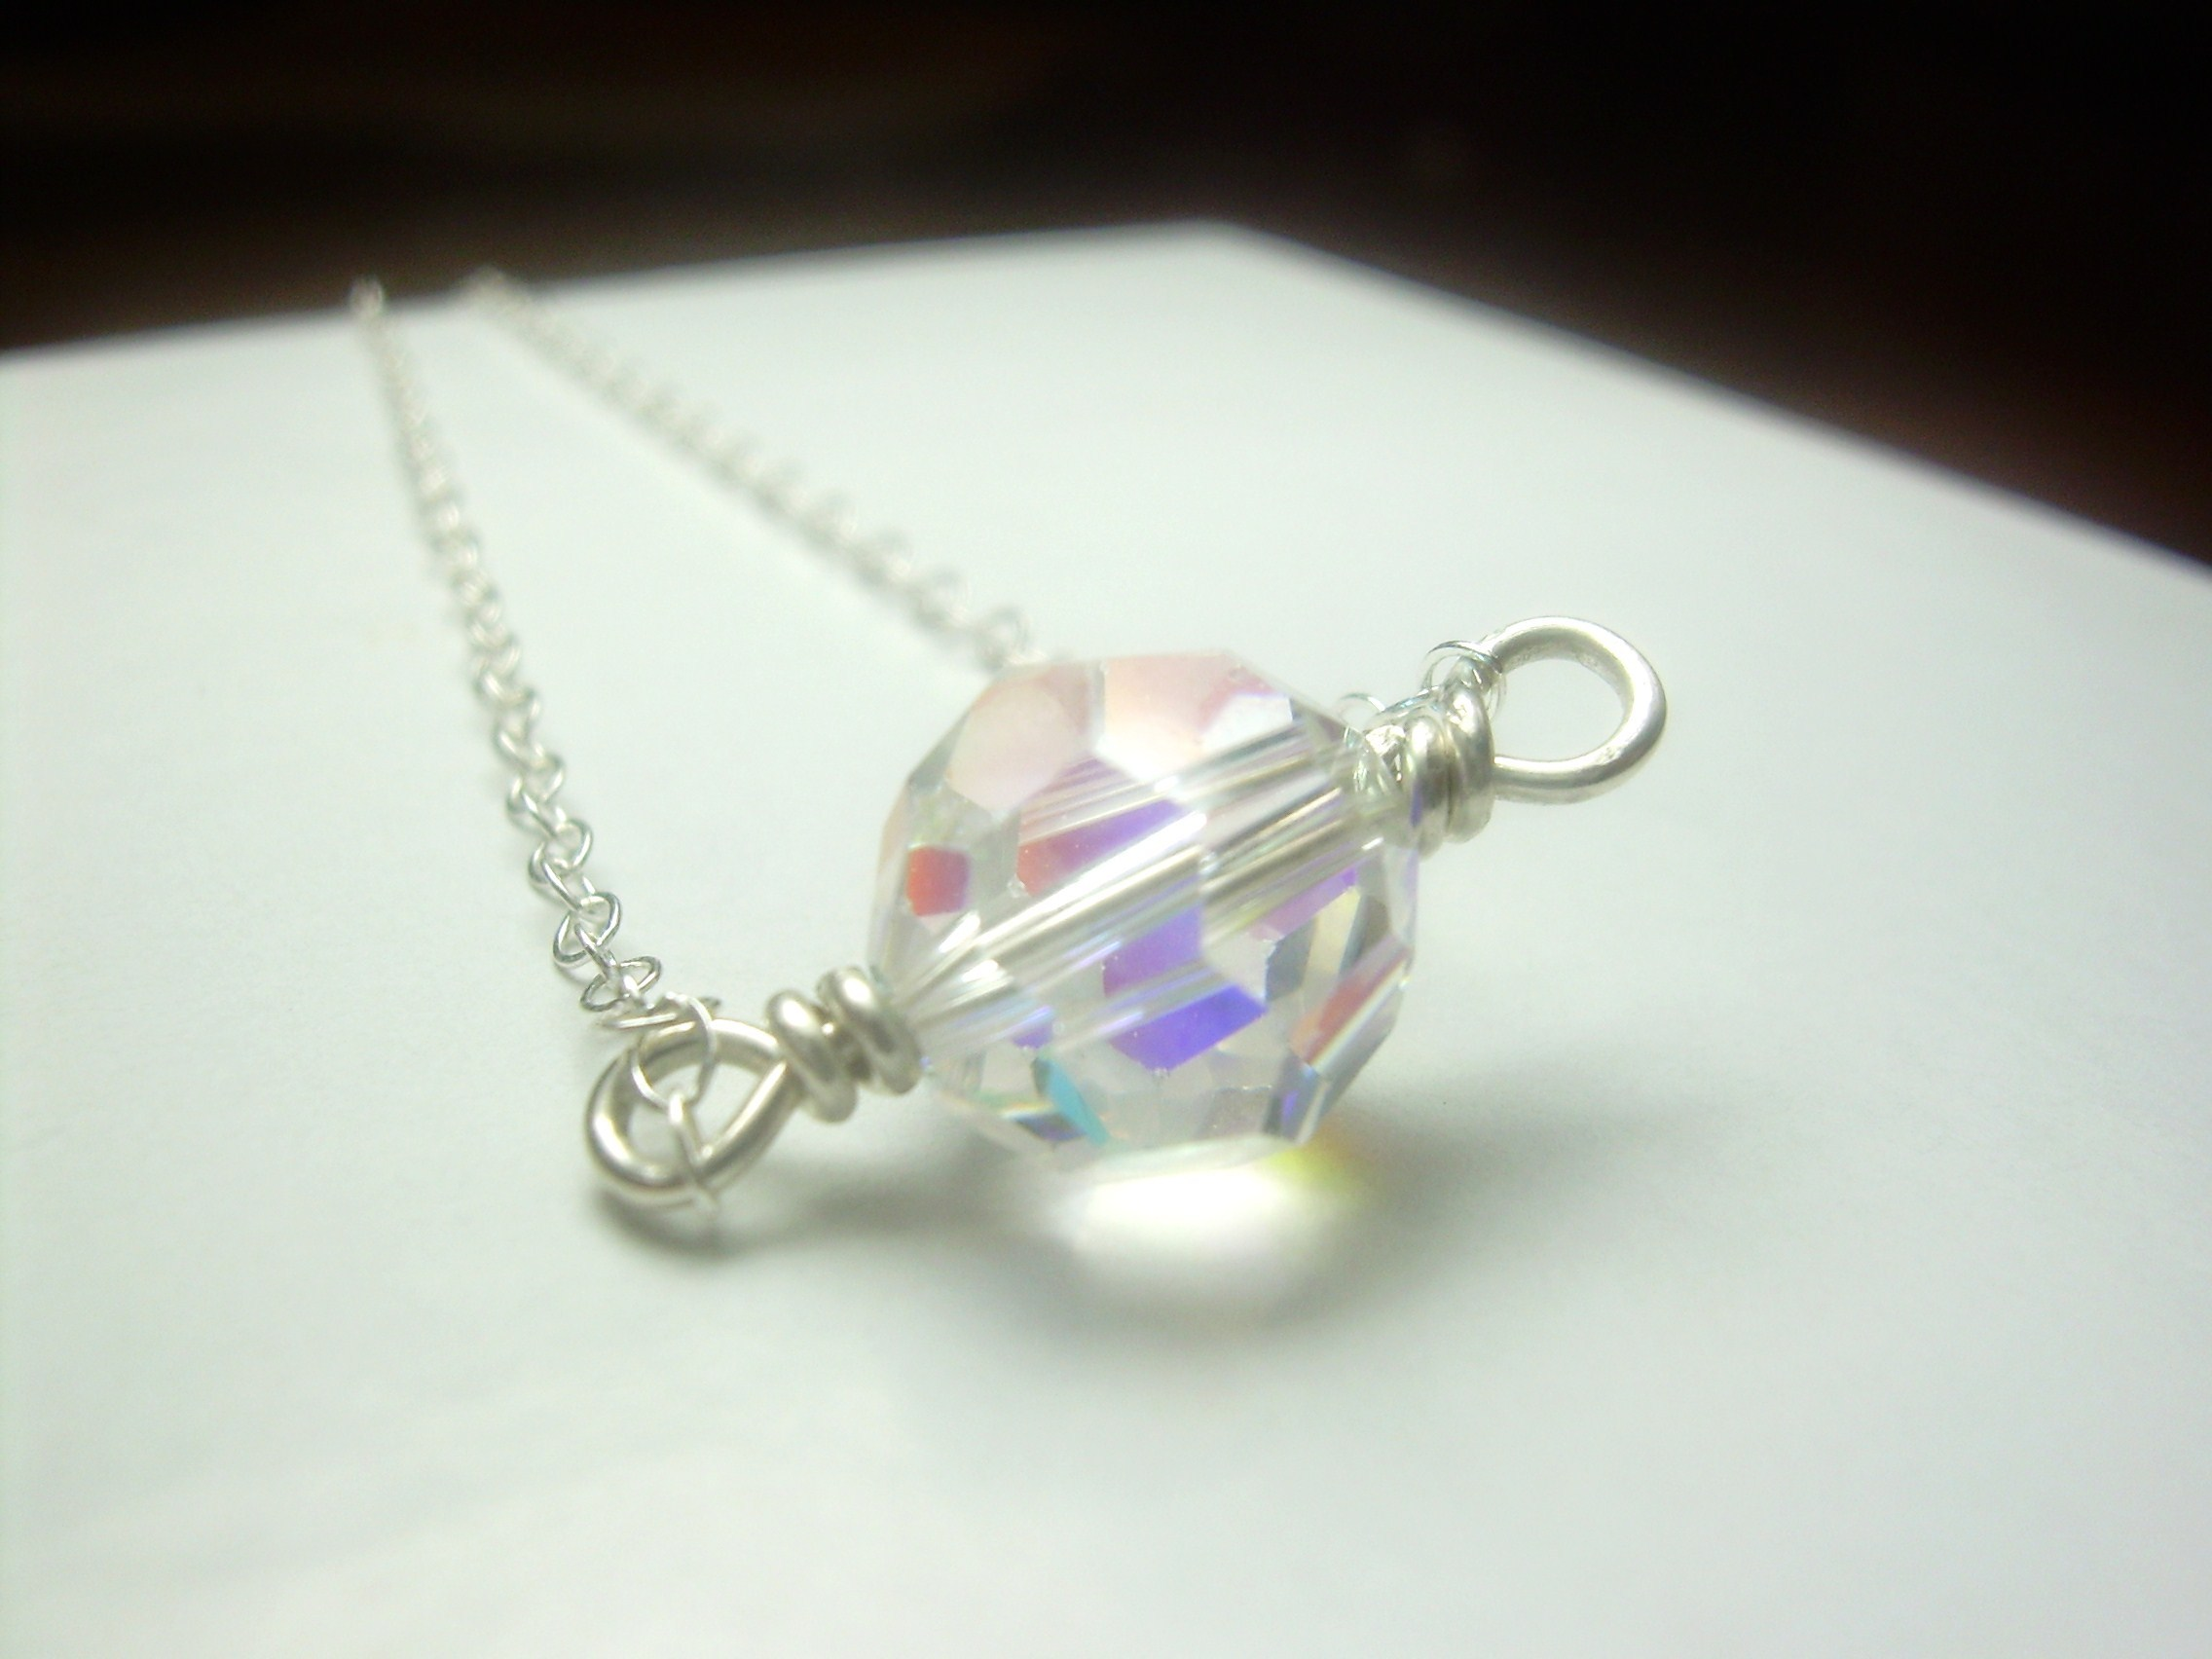 pink, white, Wedding, purple, Bridesmaids, Bride, Bridal, Jewelry, Bridesmaid, silver, Party, Crystal, Swarovski, Necklace, Light, Eye, Sterling, Bead, Sparkle, Chain, Lobster, Wire, Wrapped, Clasp, Faceted, Catching, Austrian, Bridal jewelry for you, Necklaces, Fashion, Bridesmaids Dresses